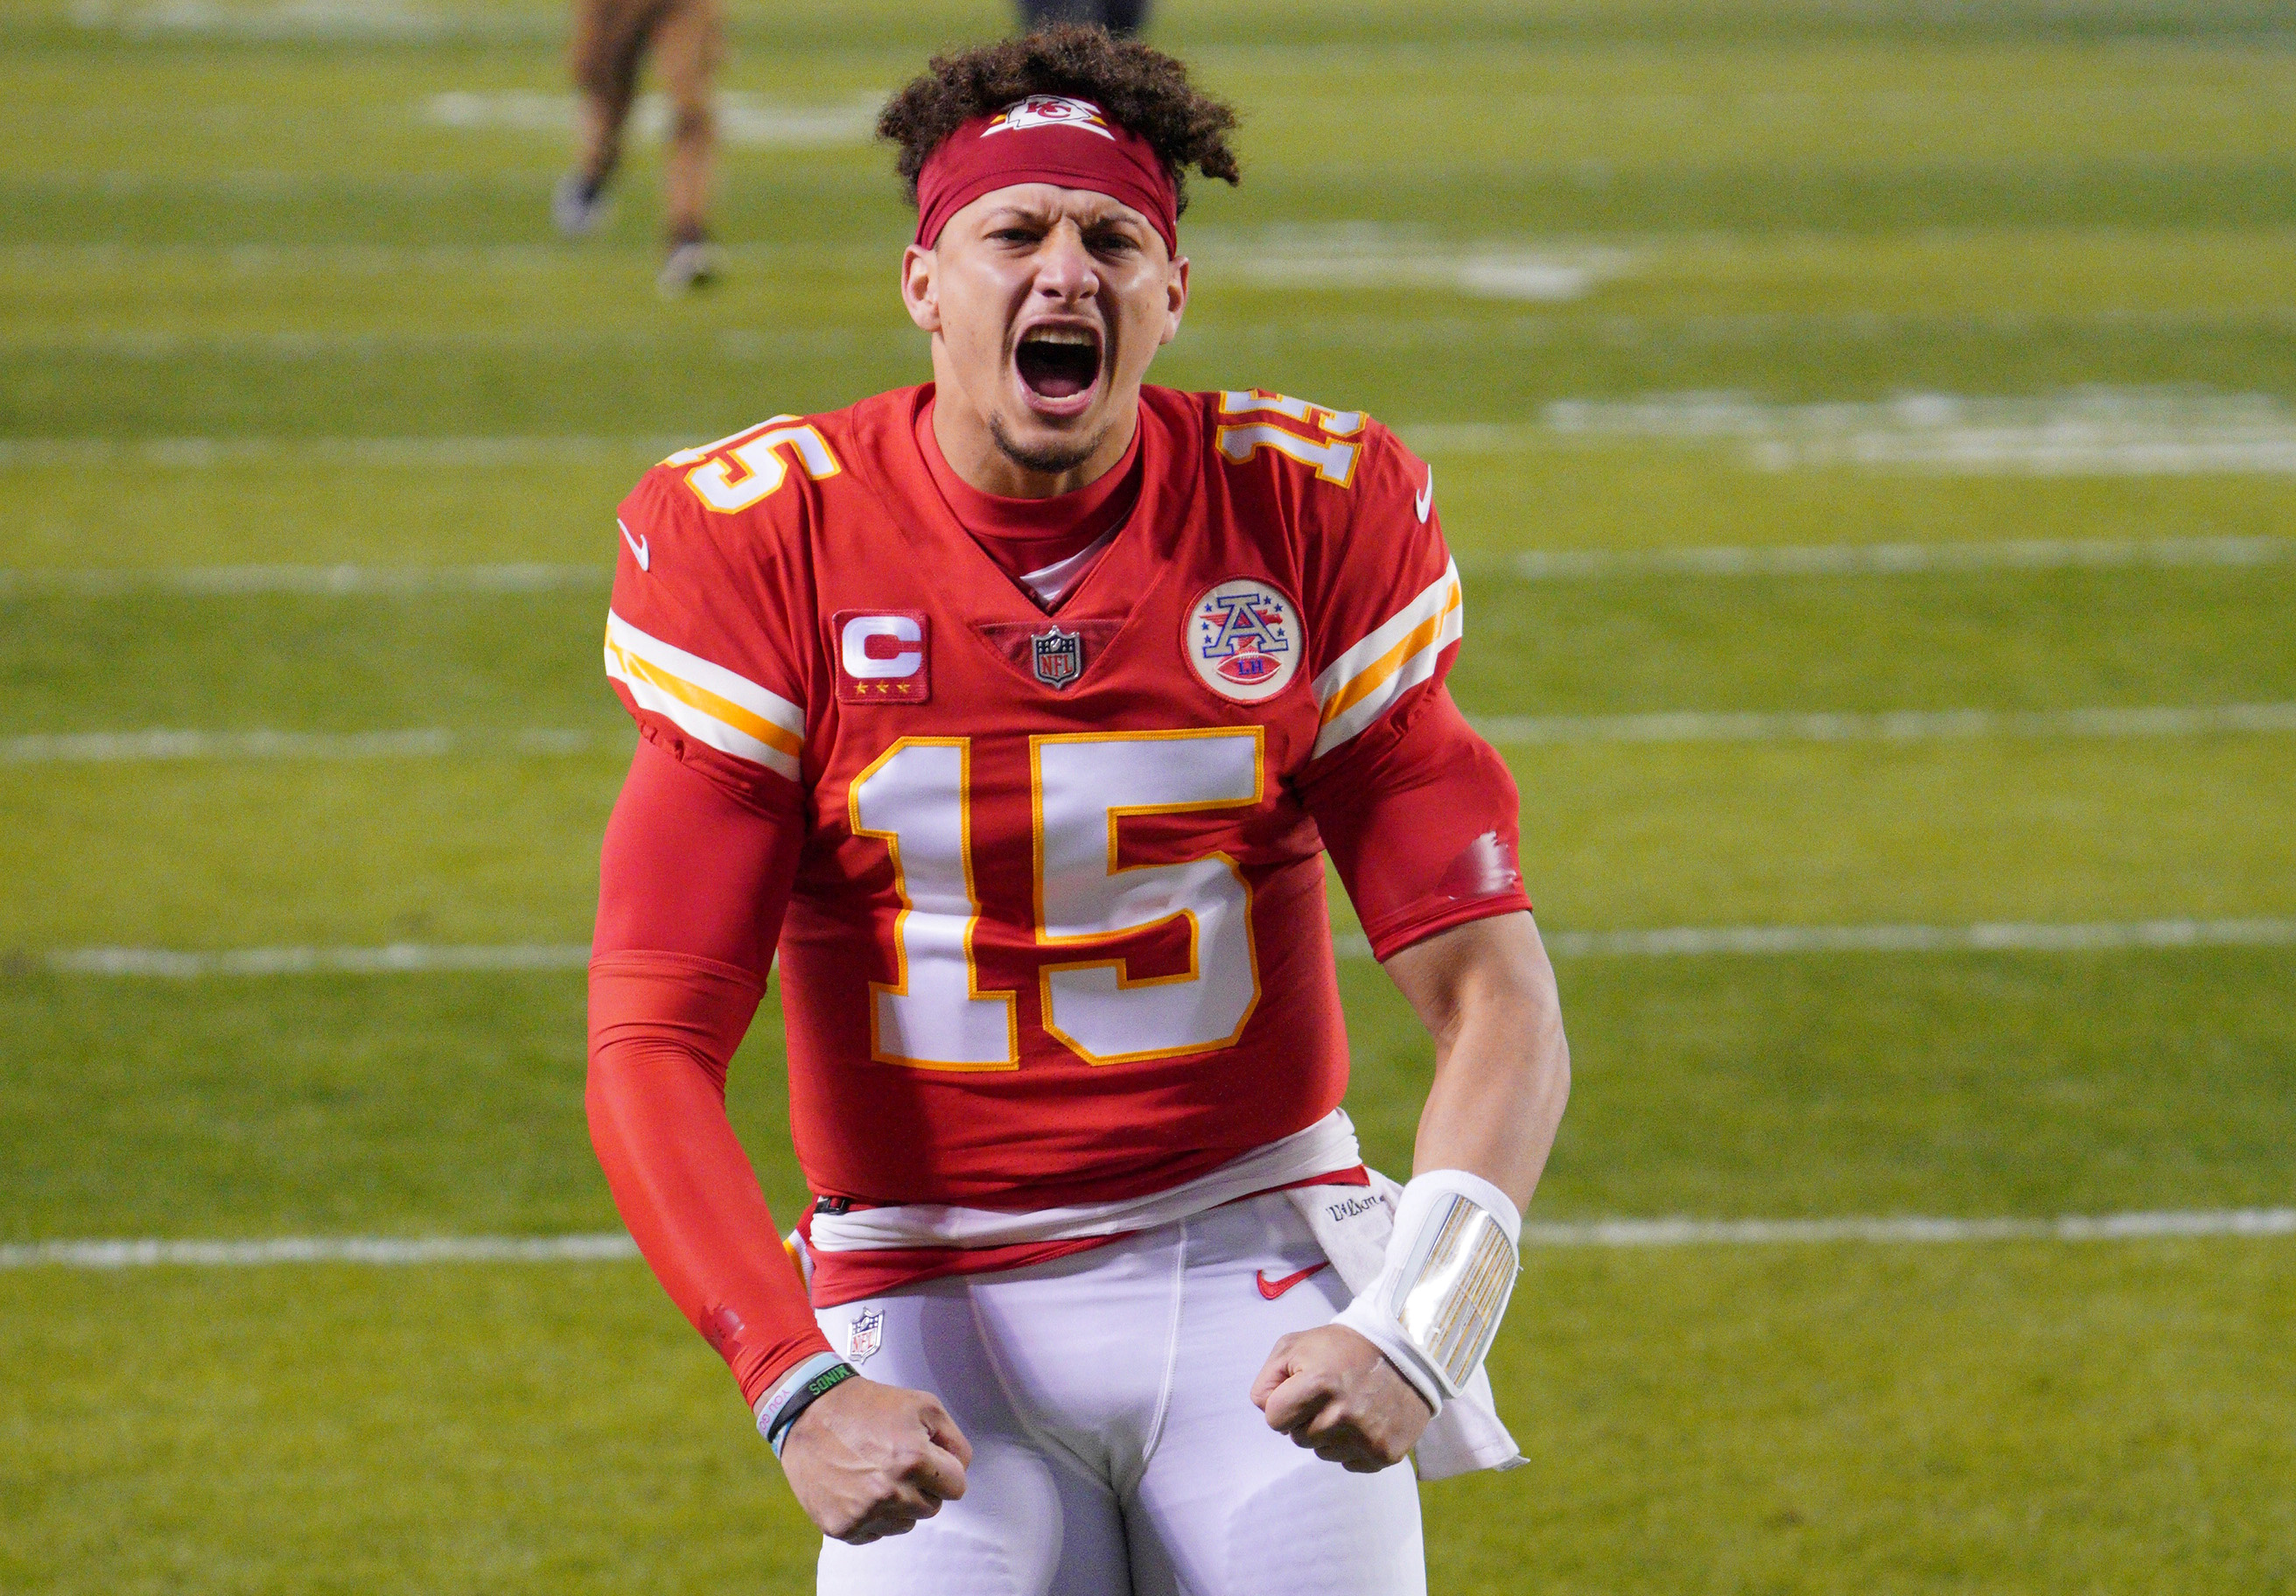 Patrick Mahomes has unmatched physical gifts. His intellect might be what  sets him apart. - The Washington Post